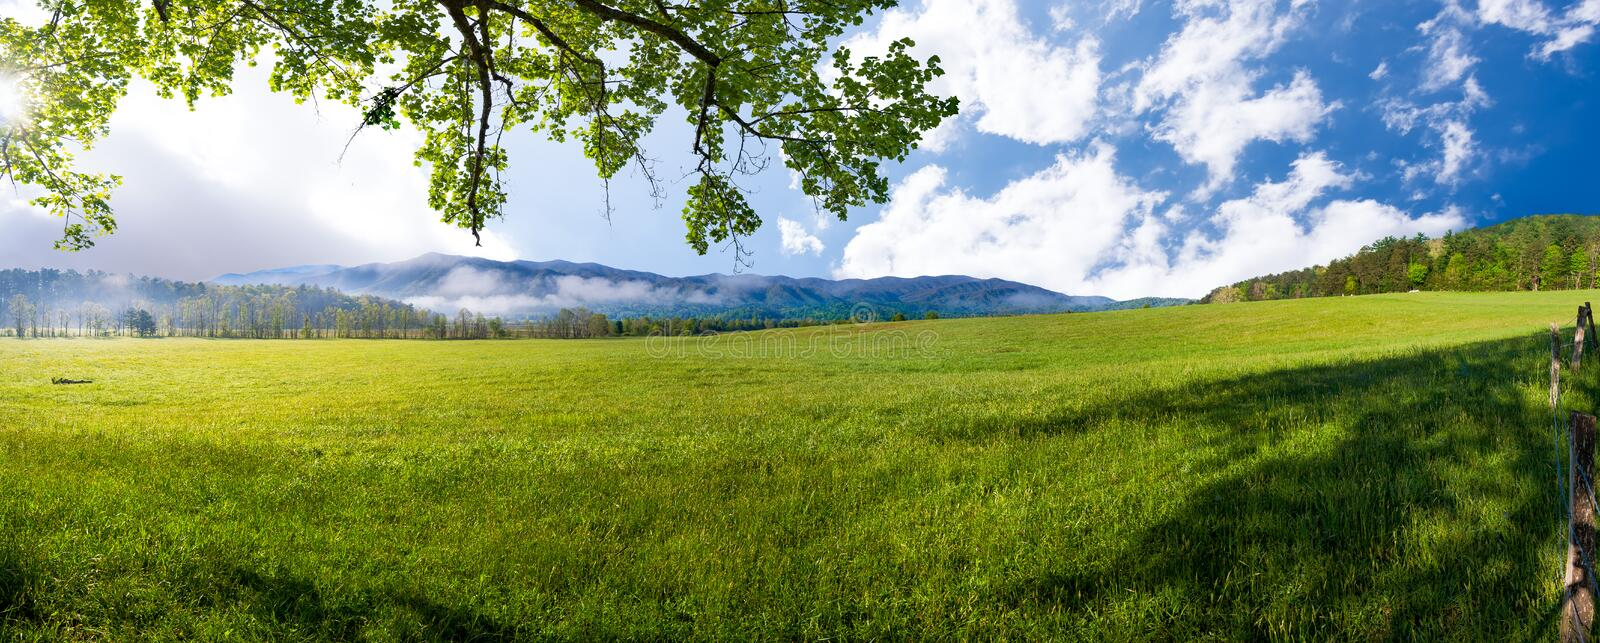 Spring Morning in Cade's Cove, TN royalty free stock photography